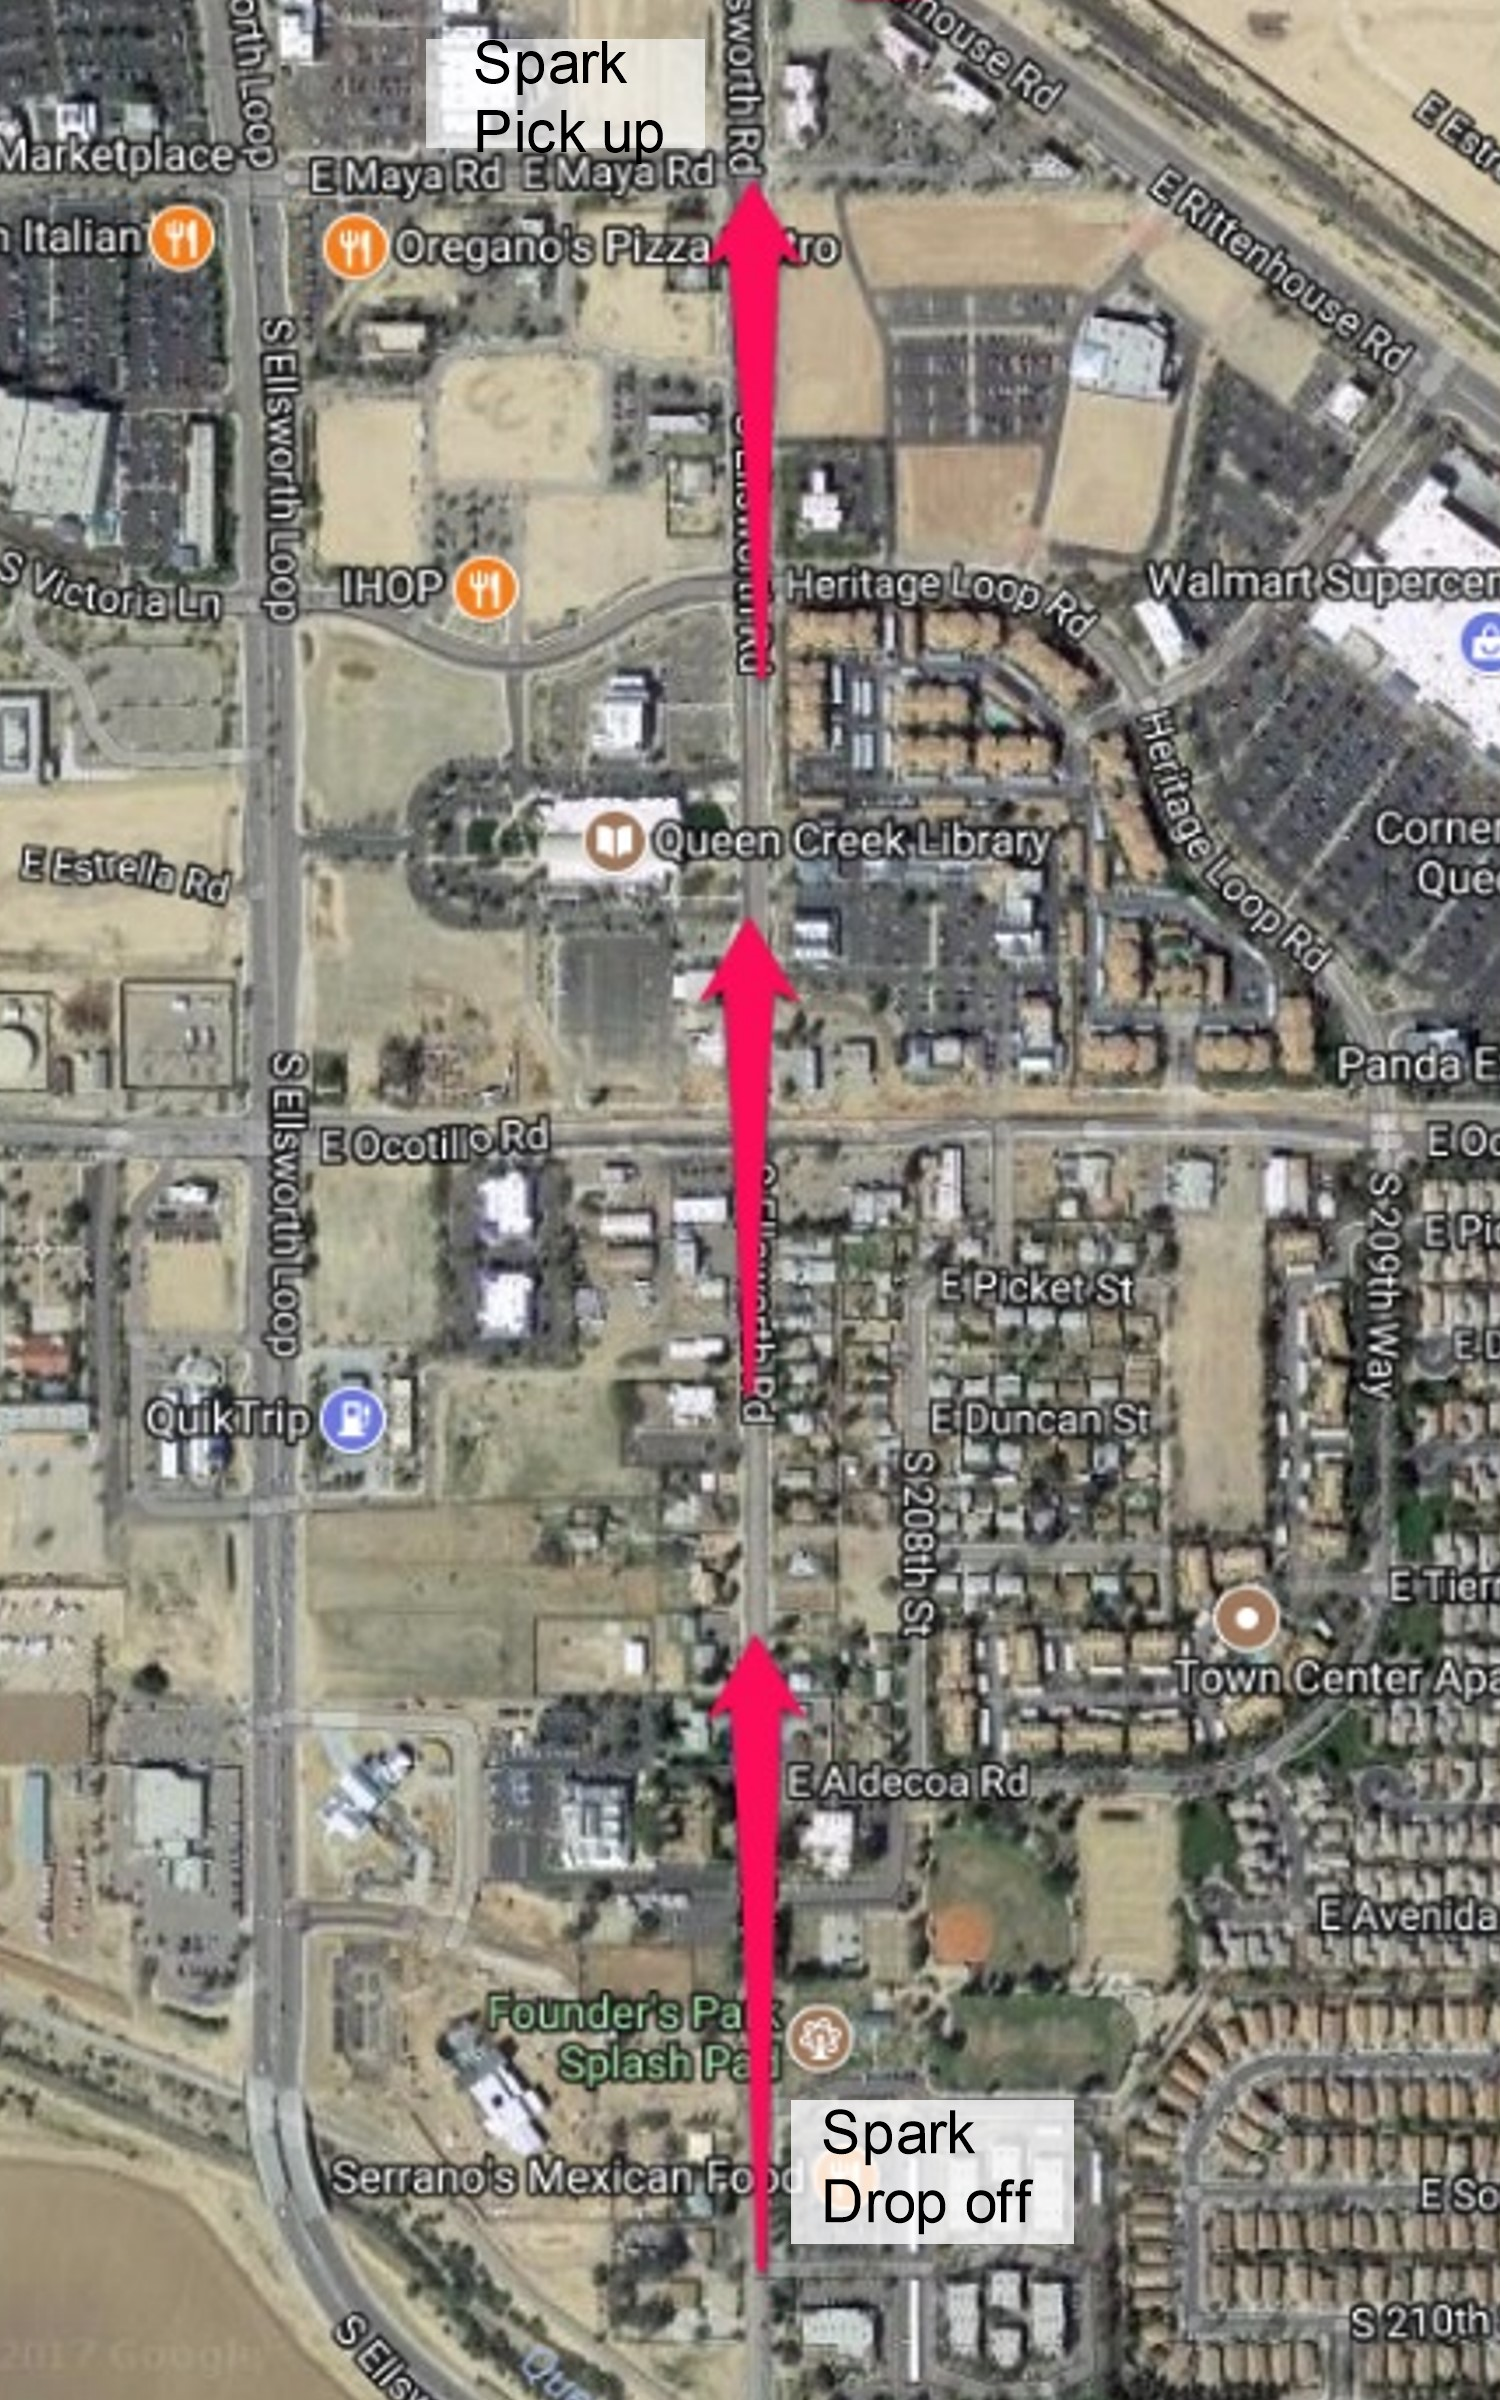 December 7th 2019 - There is a MANDATORY PRACTICE on Friday 12/6 6:45-8pm for students participating in the parade.Students who have registered for the parade will need to be dropped off at Serrano's at 2pm on Saturday 12/7. There is no parking at the drop off and parents will not be allowed out of their cars. Spark teachers will be at drop off to escort students to our float.Parents need to pick up their students along Maya Rd (south of the Dunn-Edwards paint store) after our float passes you. Once your student is picked up, you may return to your seat to watch the rest of the parade.City of Queen Creek Parade Information can be found HERE.